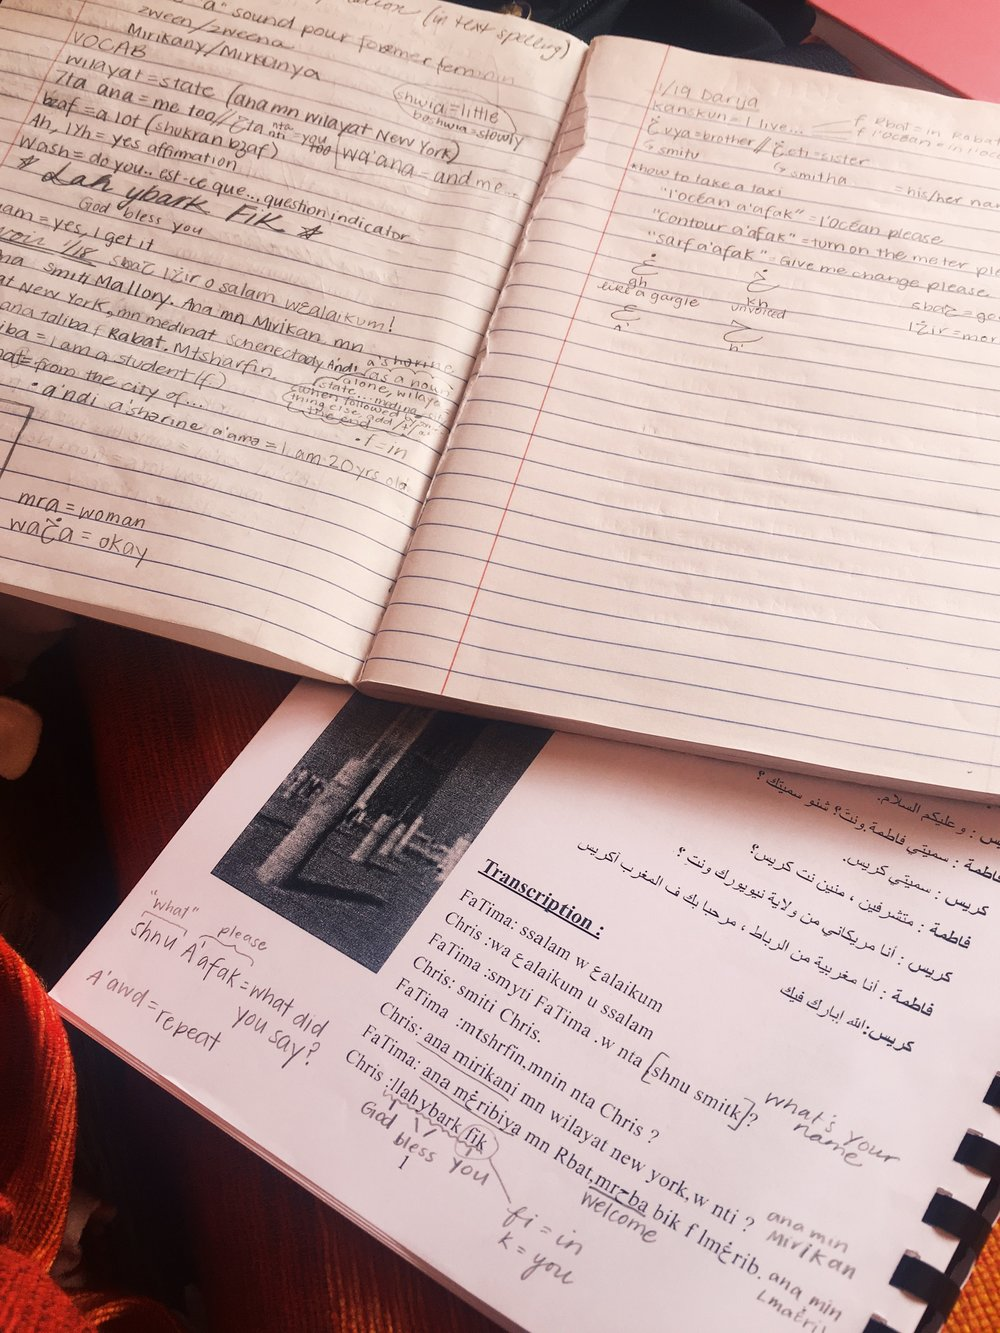 My Darija notebook. Trying to translate between this new language, my familiar French, and my native English is delightfully challenging. Photo Credit: Mallory Mrozinski, Spring 2018.